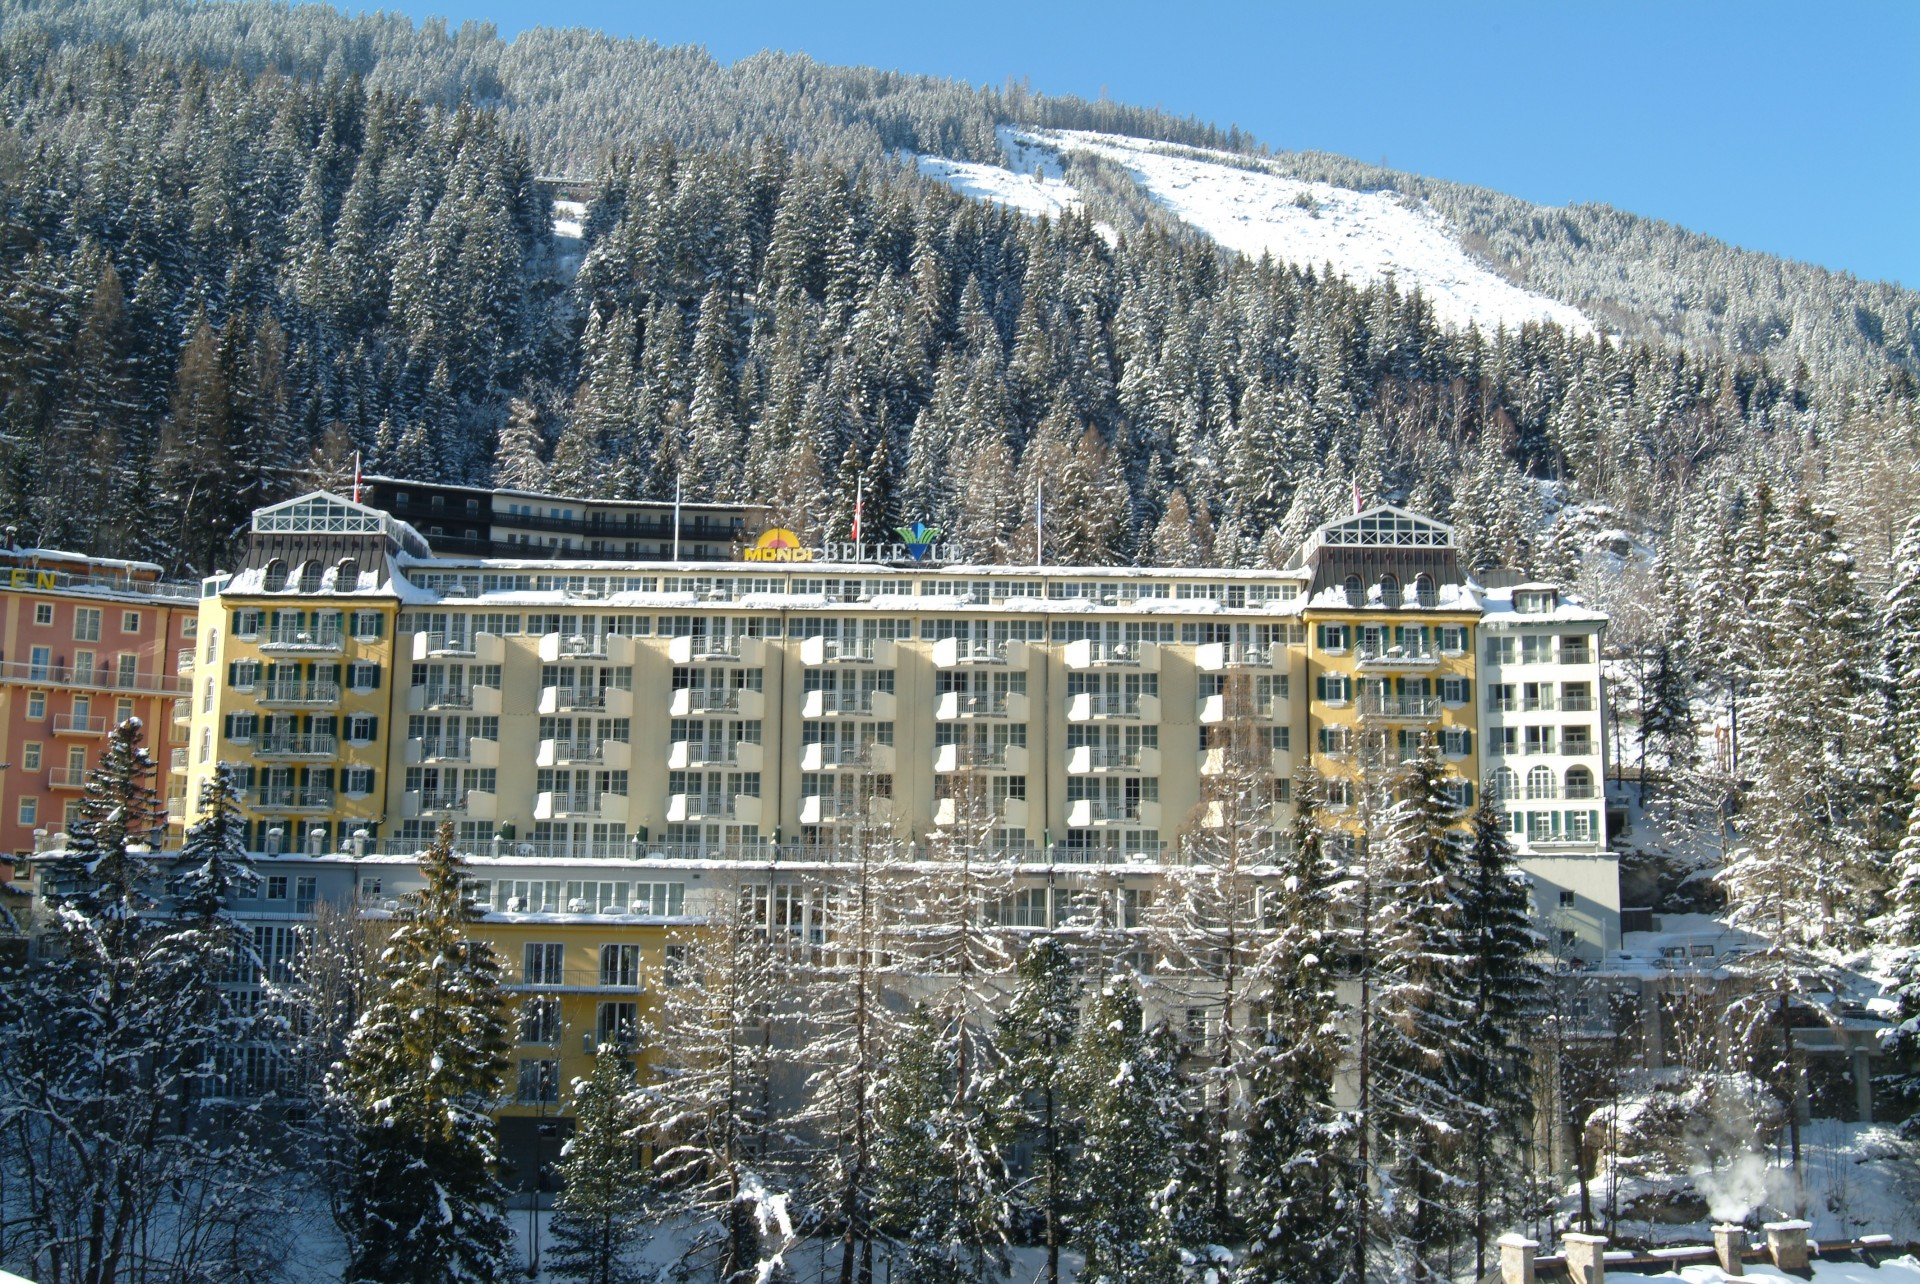 MONDI HOLIDAY Bellevue Bad Gastein 4 Stars In Gastein